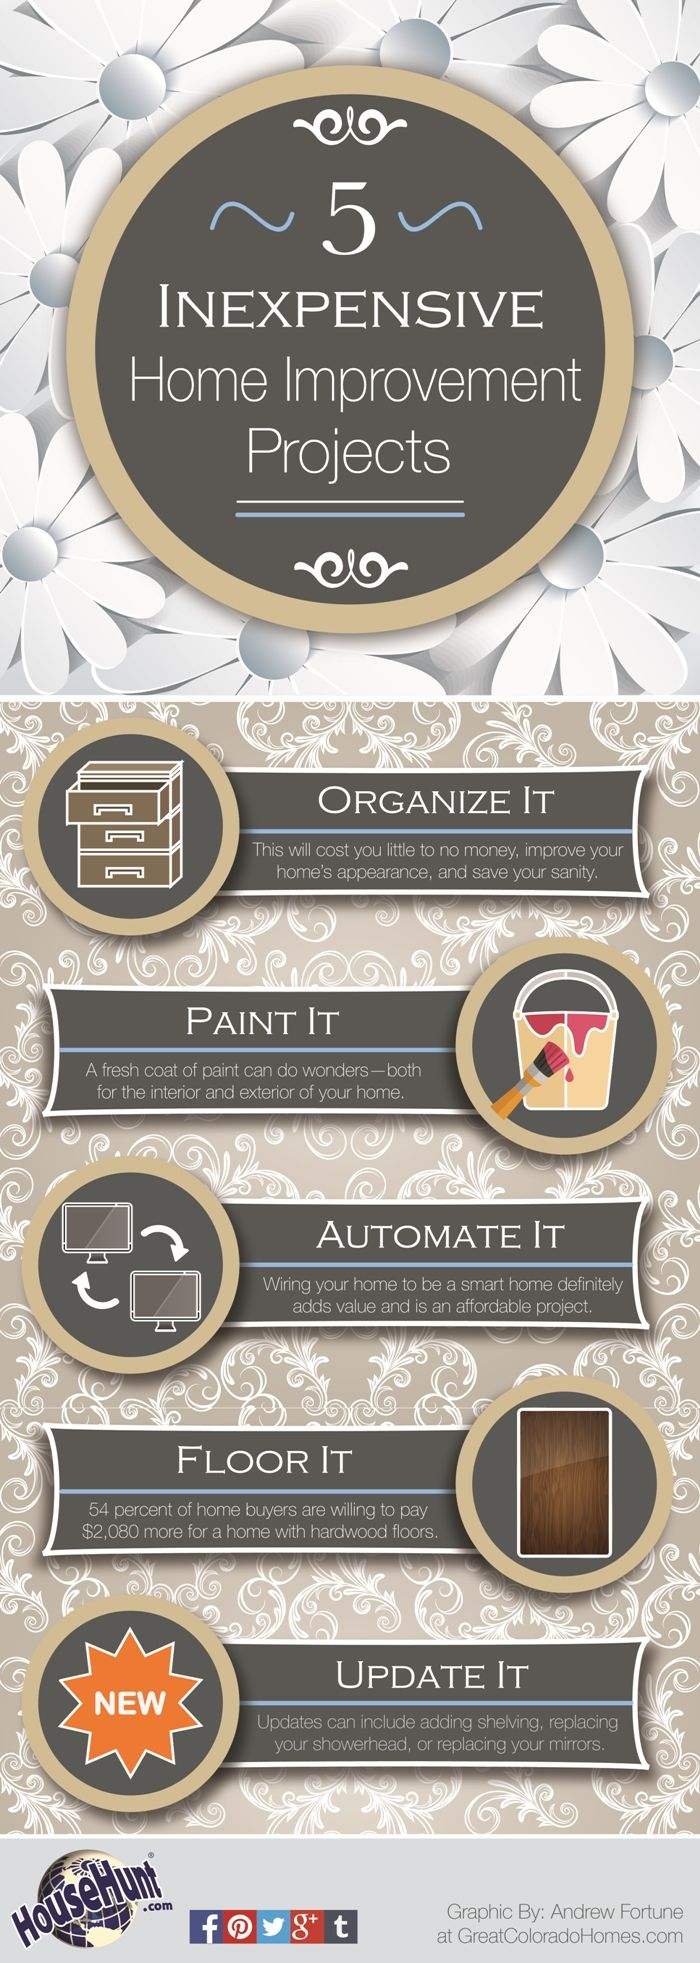 Best Home Improvement Projects Infographic